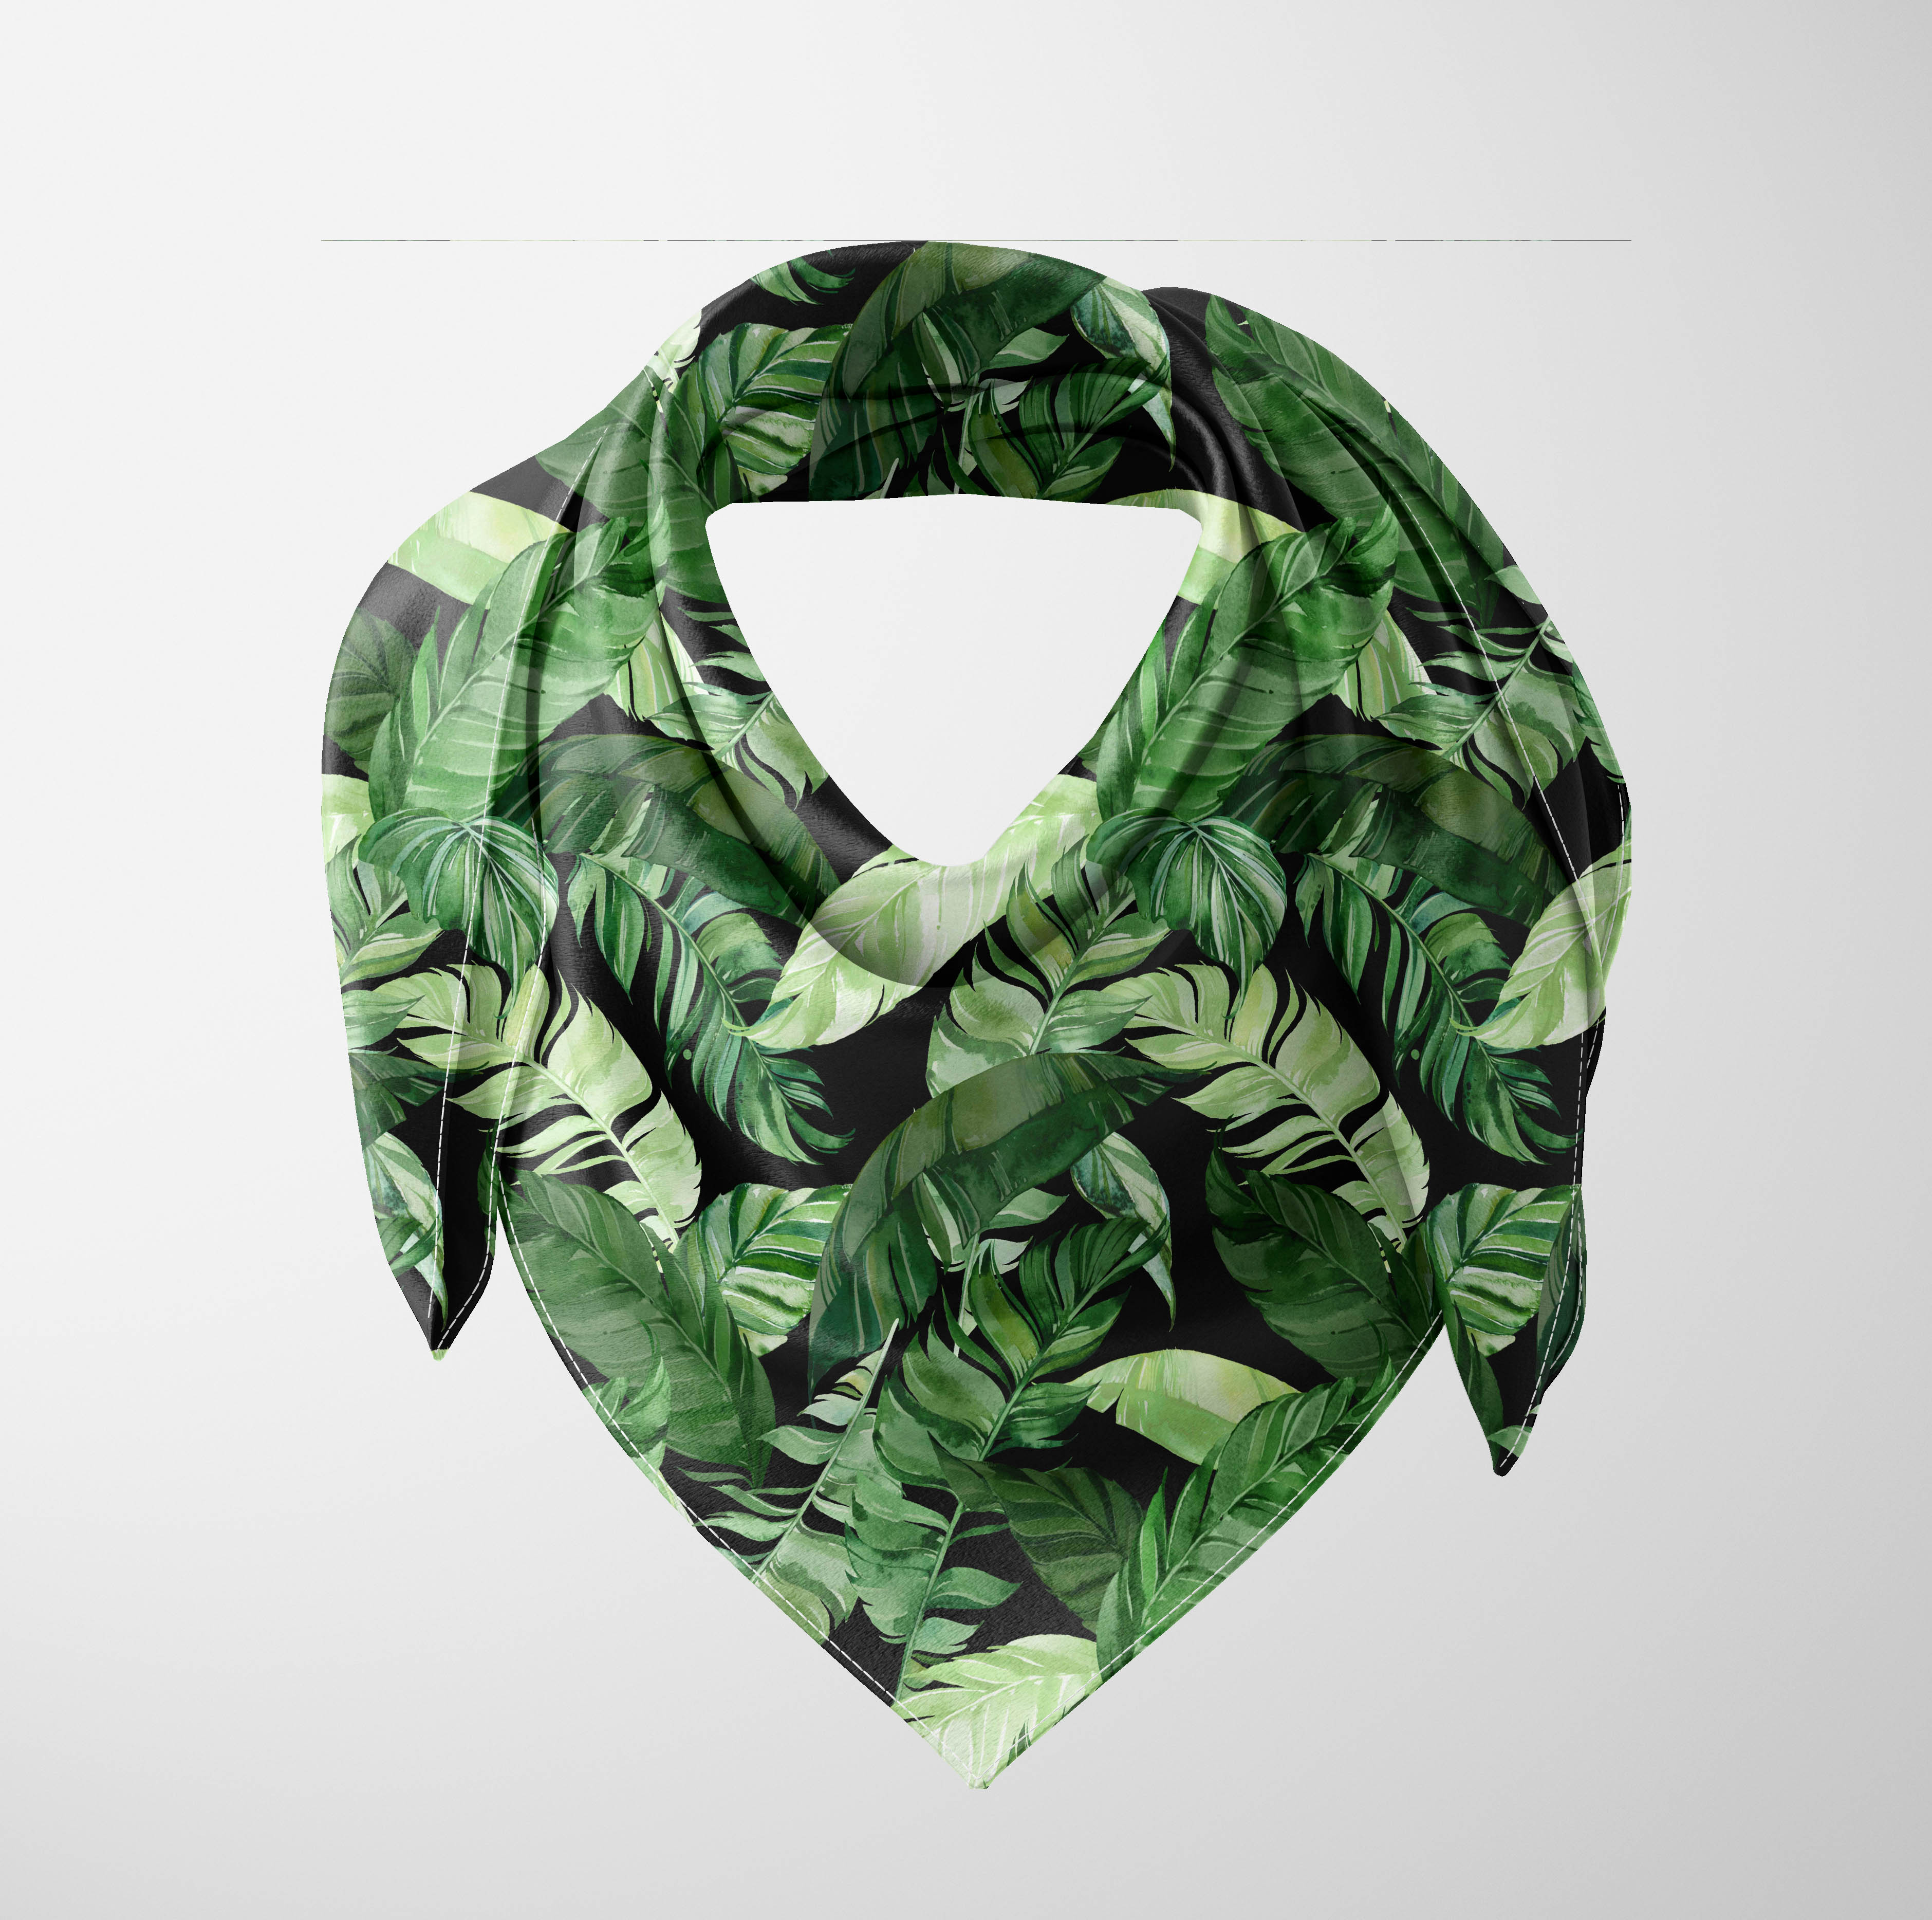 Else Black Green Jungle Tropical Leaves Floral 3d Printed Square Rayon Fabric Neck Head Floral Pattern Scarf Scarves Women Hijab